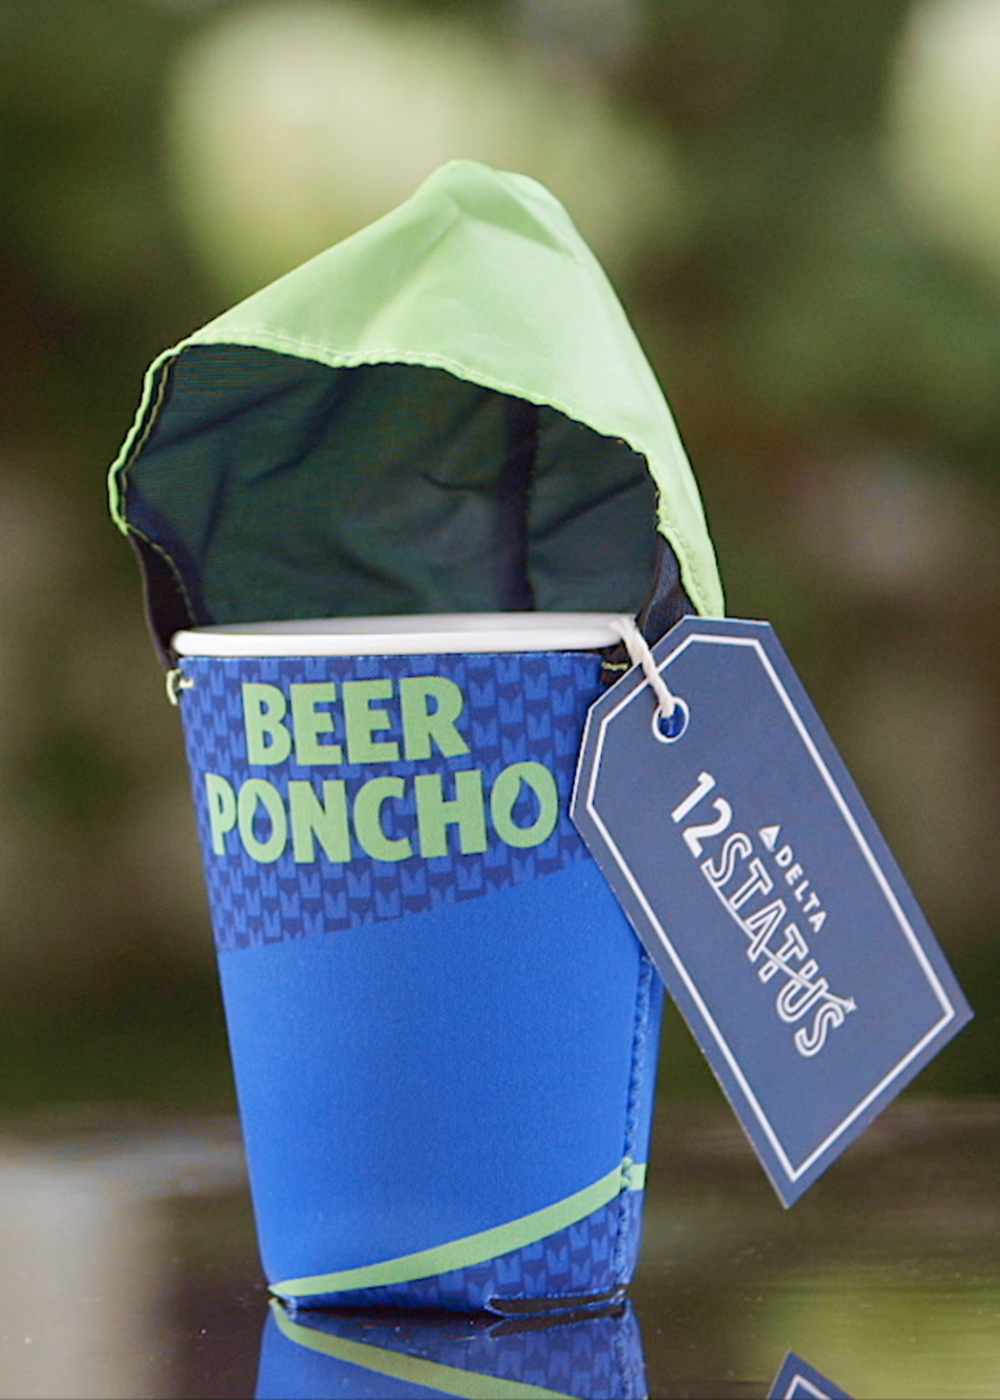 THE BEER PONCHO